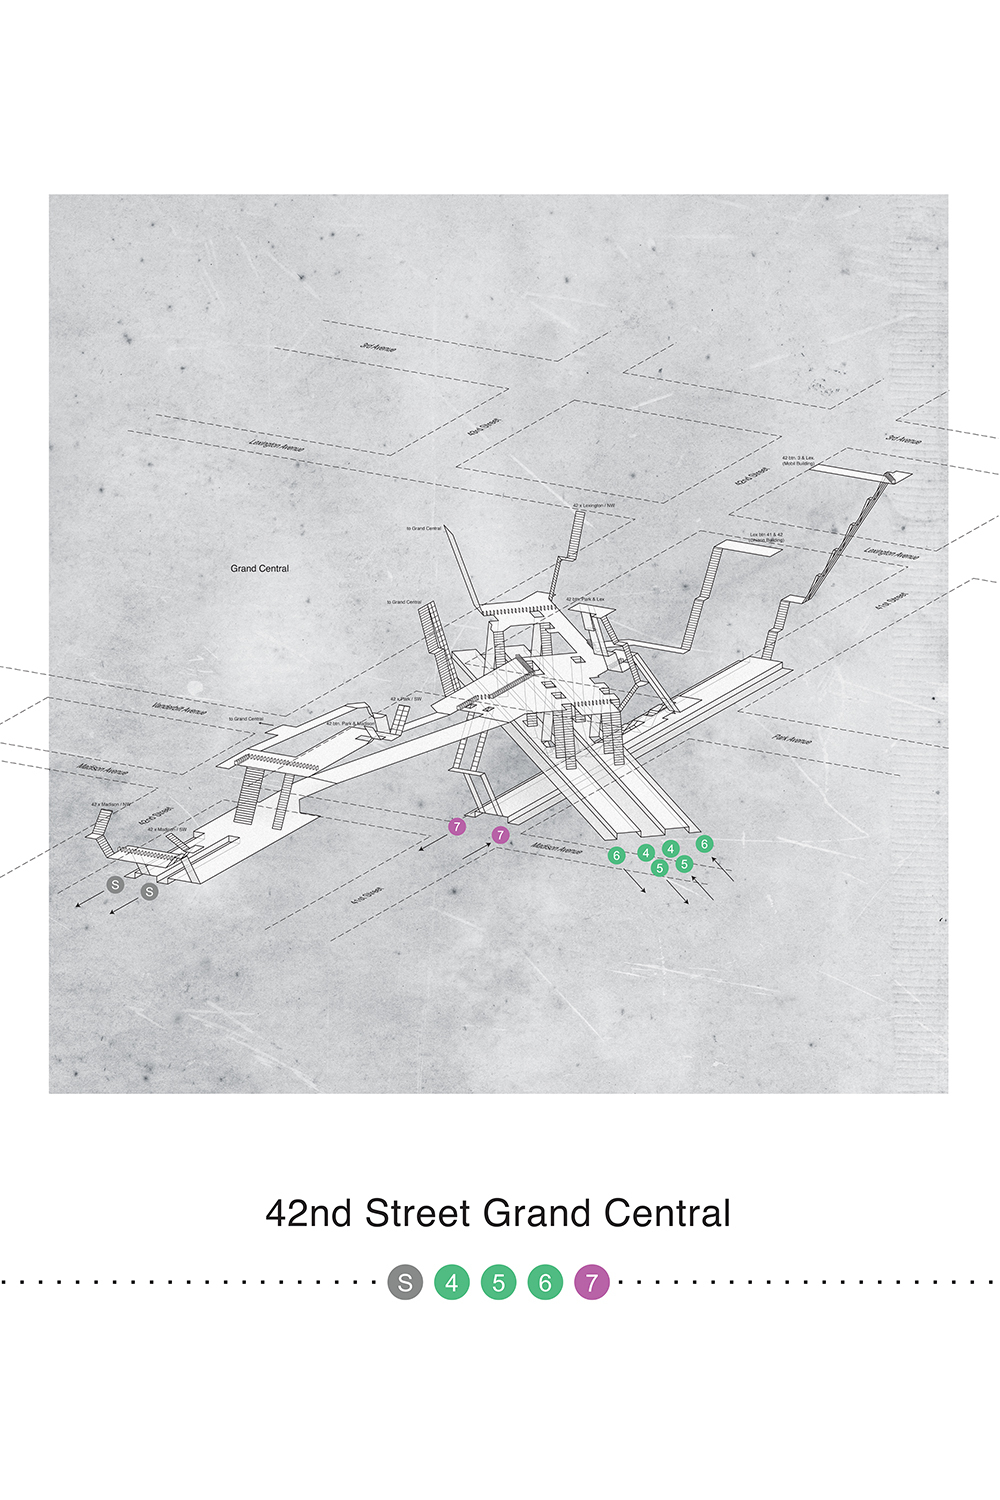 a map showing New York's train lines at 42nd Street Grand Central